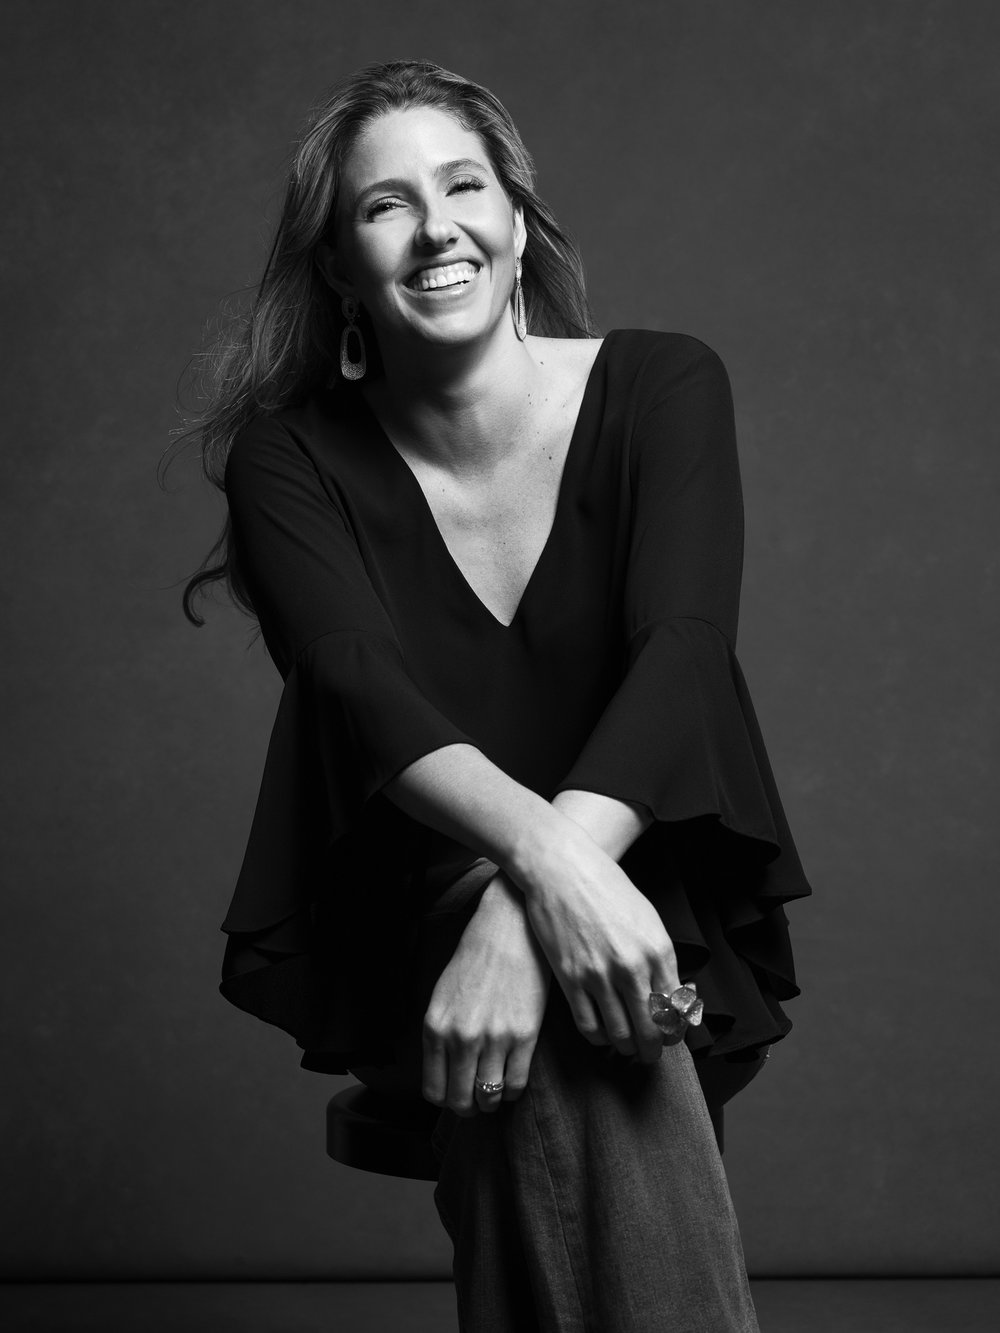 Cristina Santos - Co-Founder / Creative Director of C'Santos